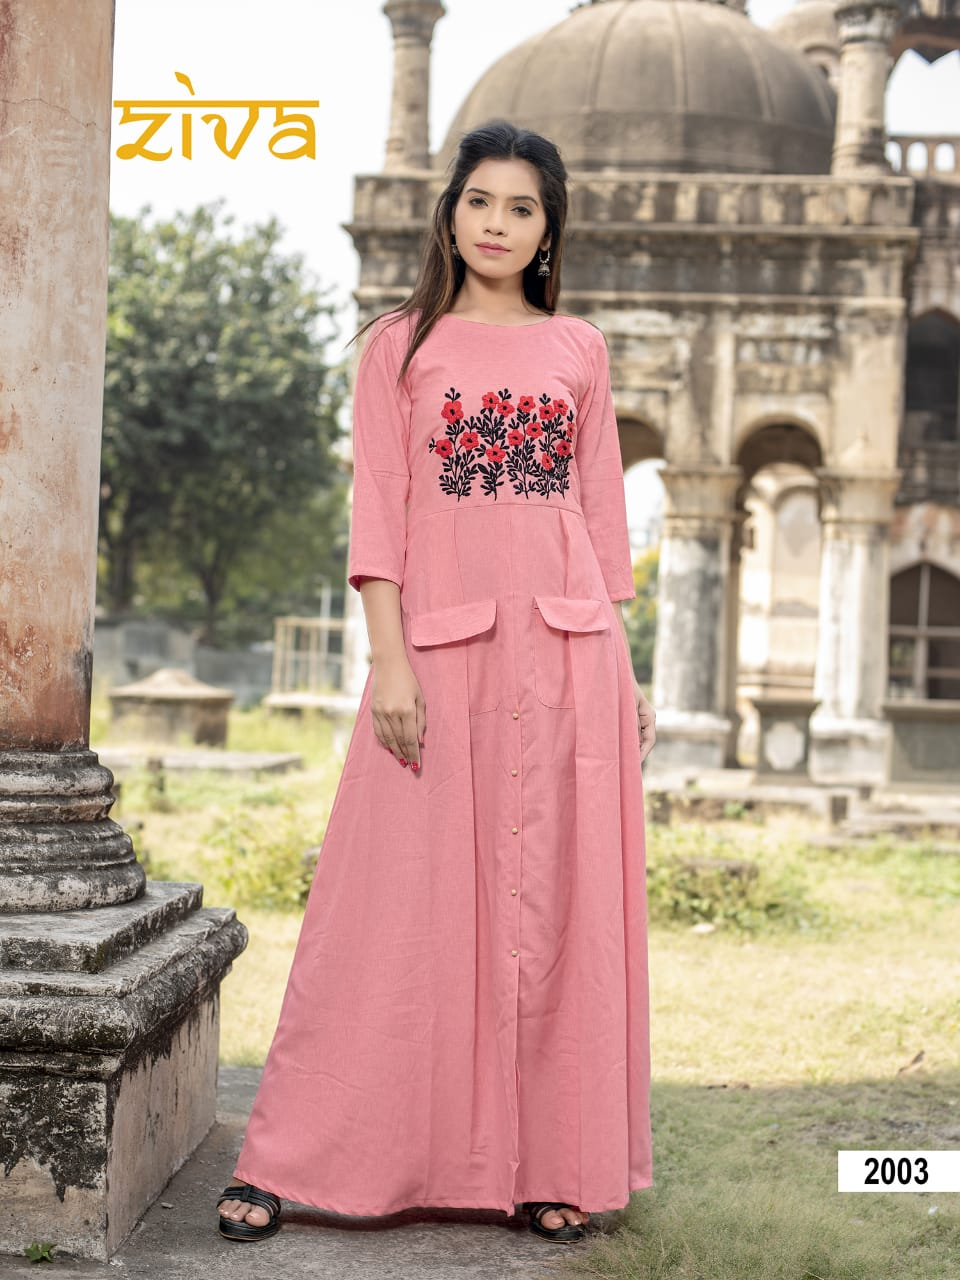 fd20cbf521 Ziva launch ziva vol 2 beautiful party wear gown style kurtis concept